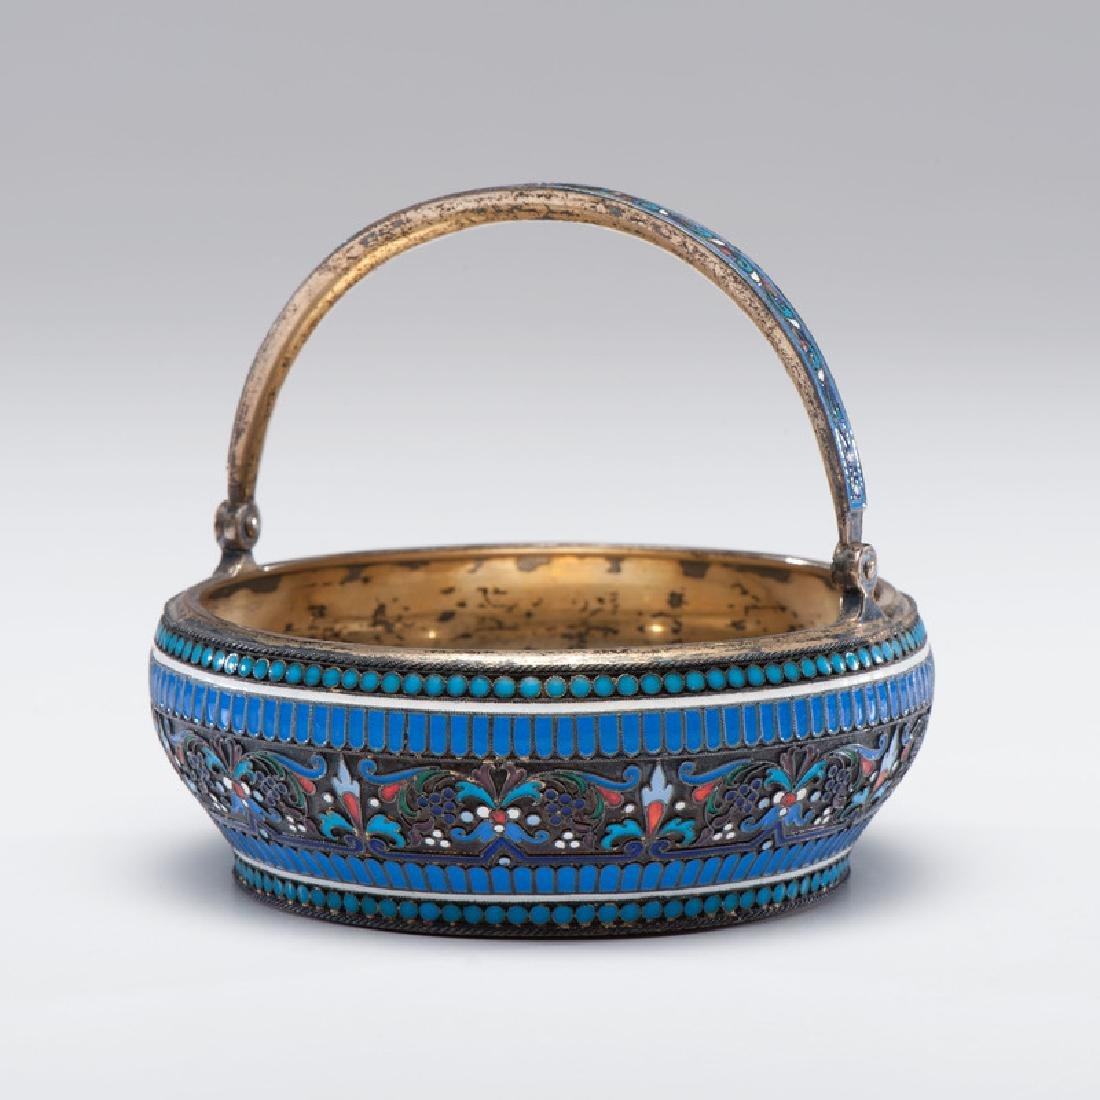 Russian Silver-Gilt and Enamel Basket